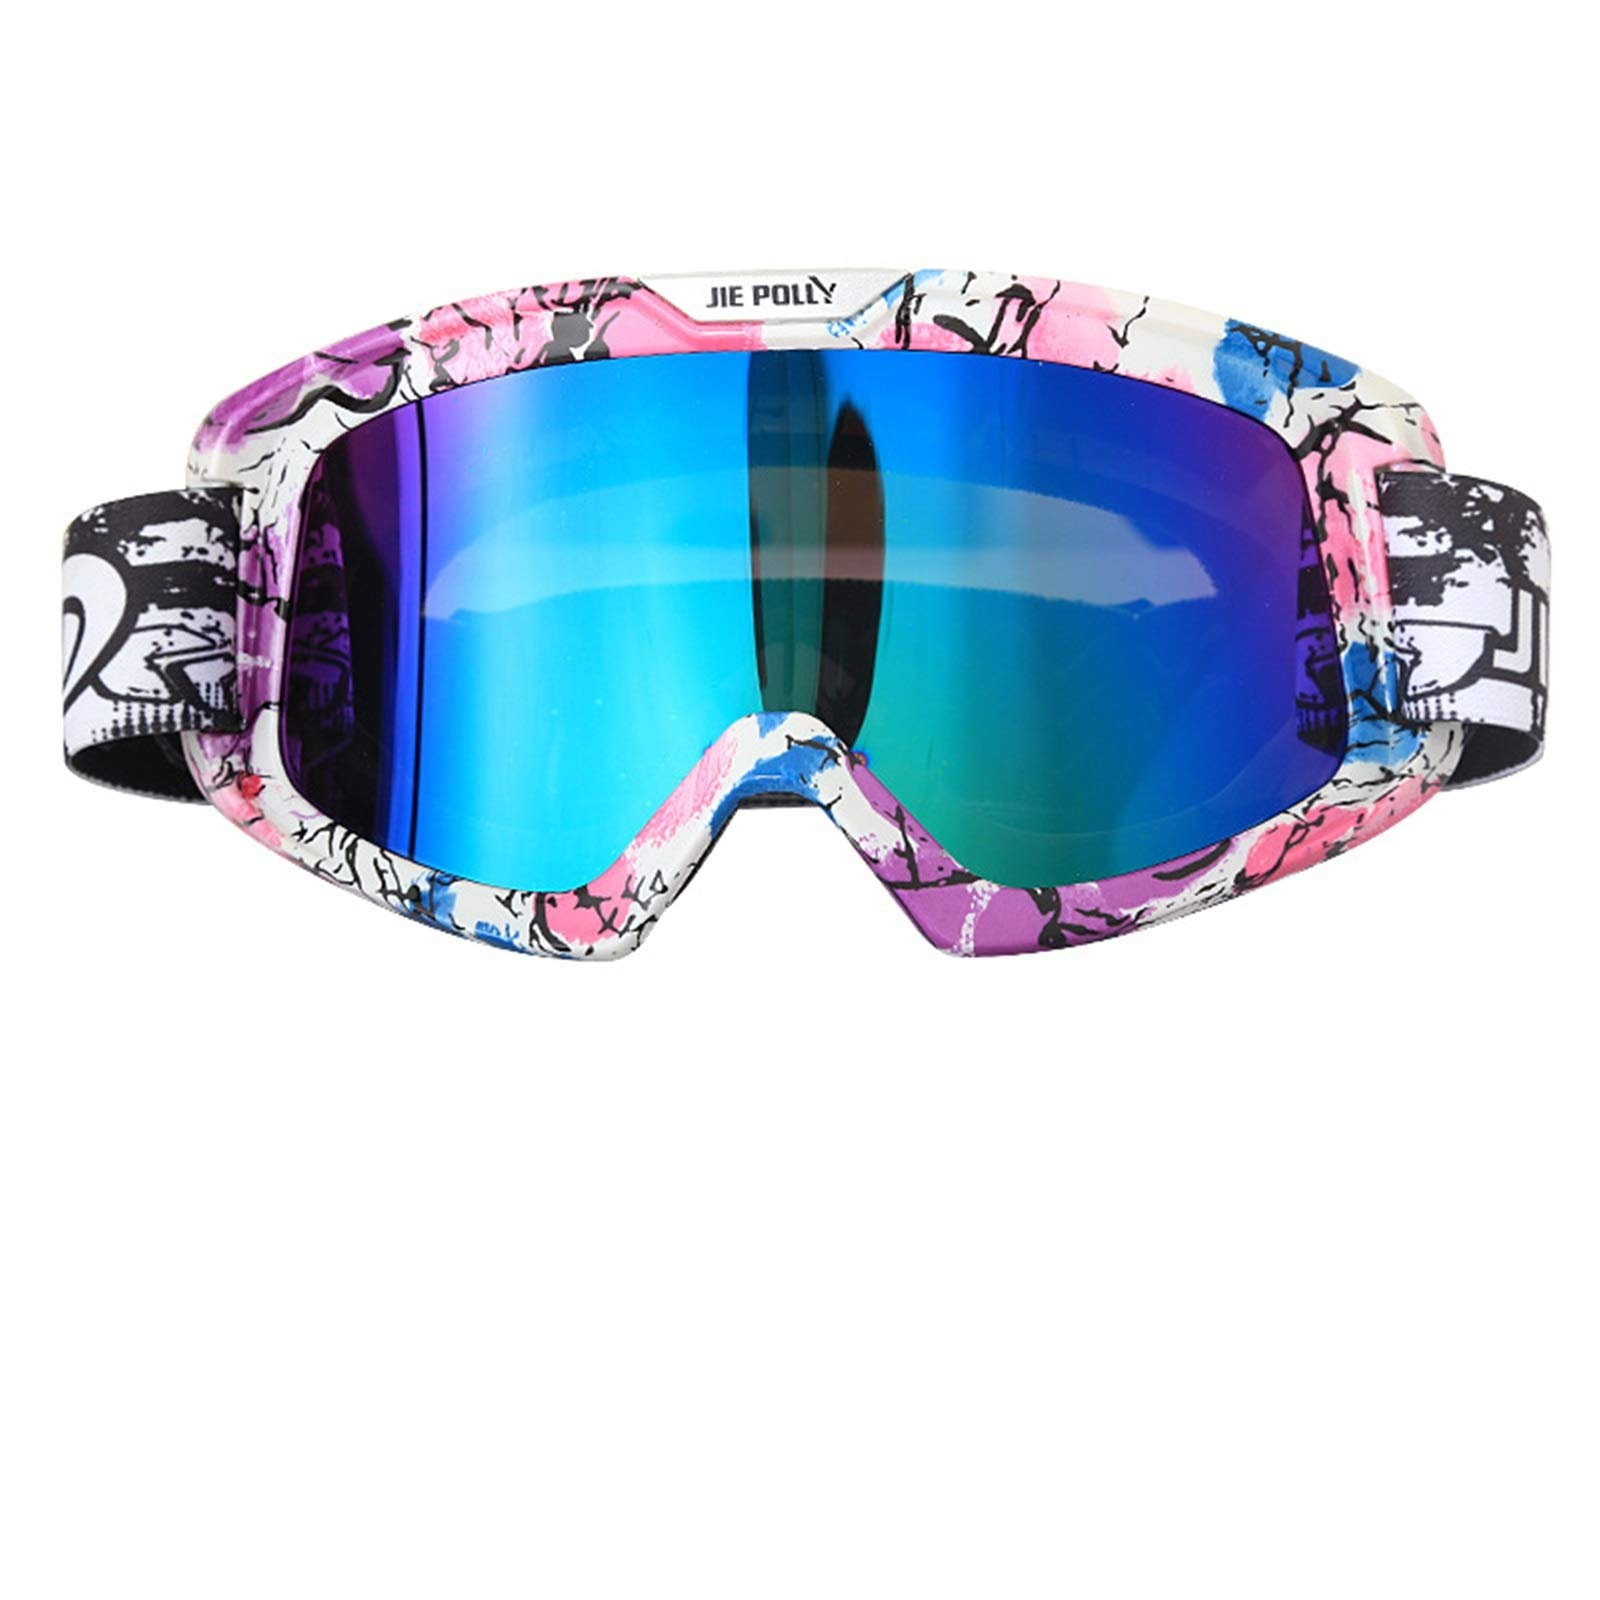 Adisaer Riding Goggles Motorcycle Equipment Off-Road ski Sand-Proof Goggles Colorful A02 for Adults